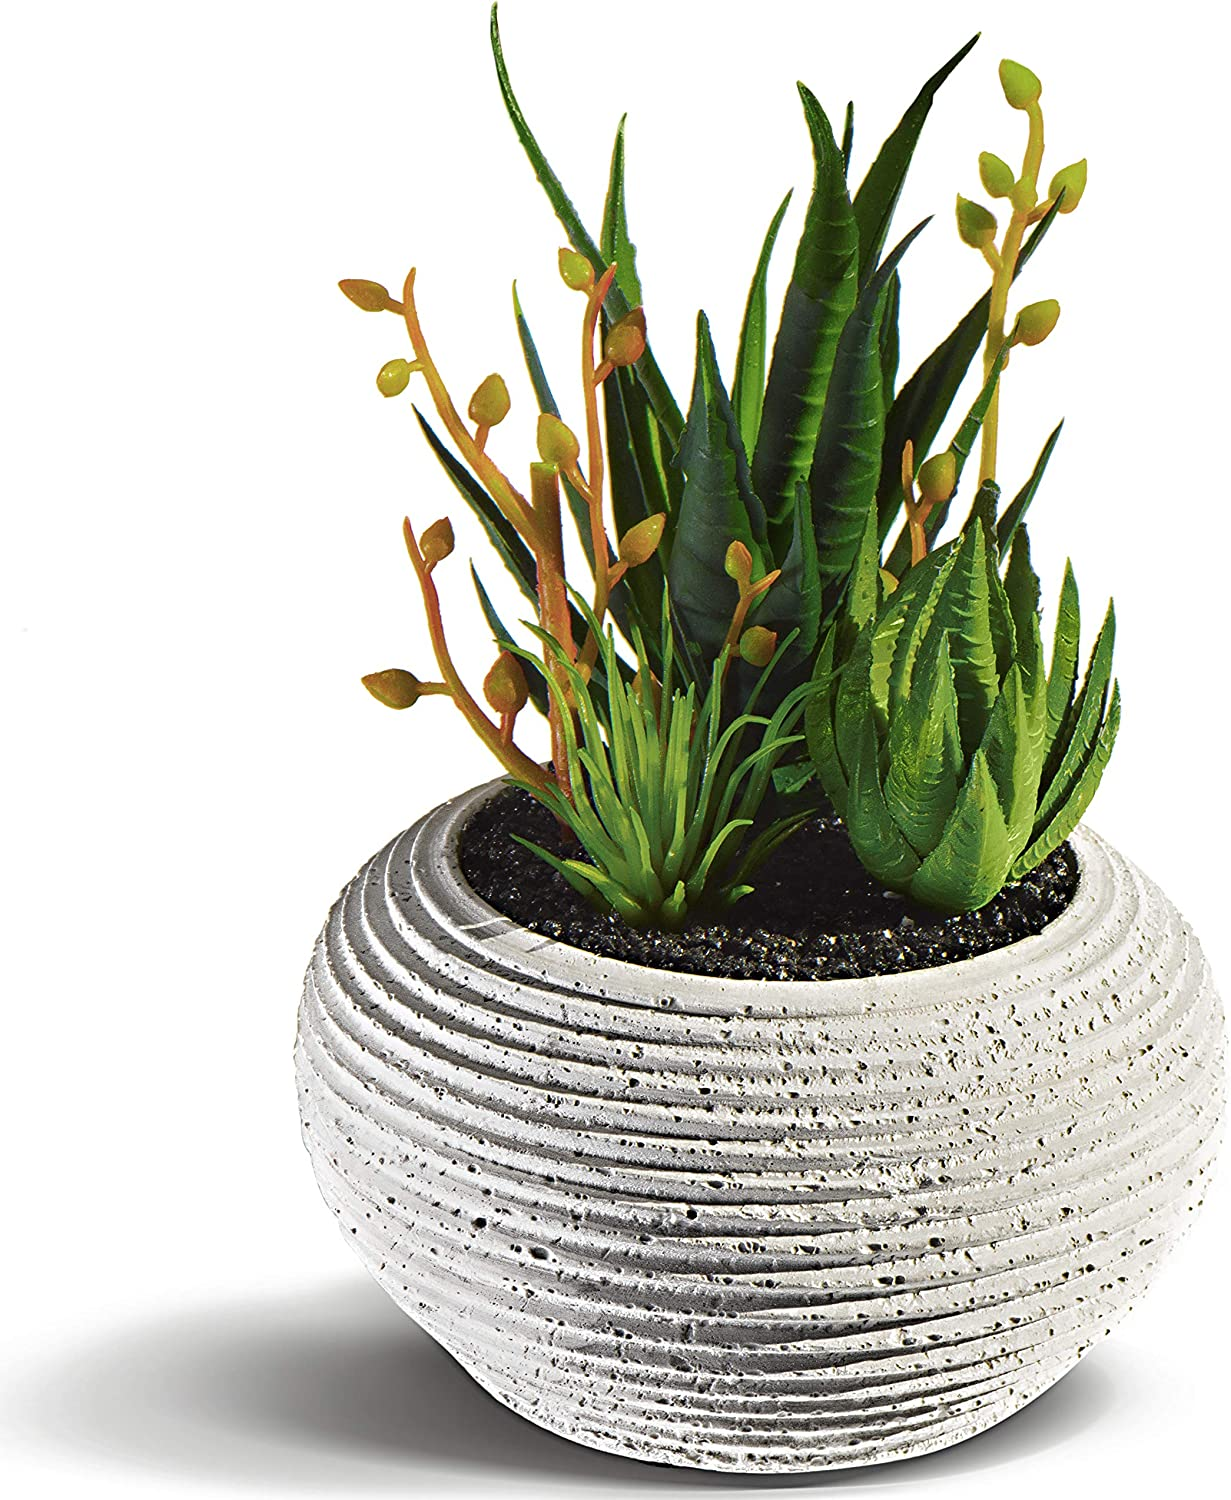 Succulents Artificial Plants in Cement Pots - Fake Plants of Realistic Look (5 PCS) - Small Artificial Plants in Pots for Home Decor Indoor - Fake Succulents for Home and Office Interior - Faux Plants